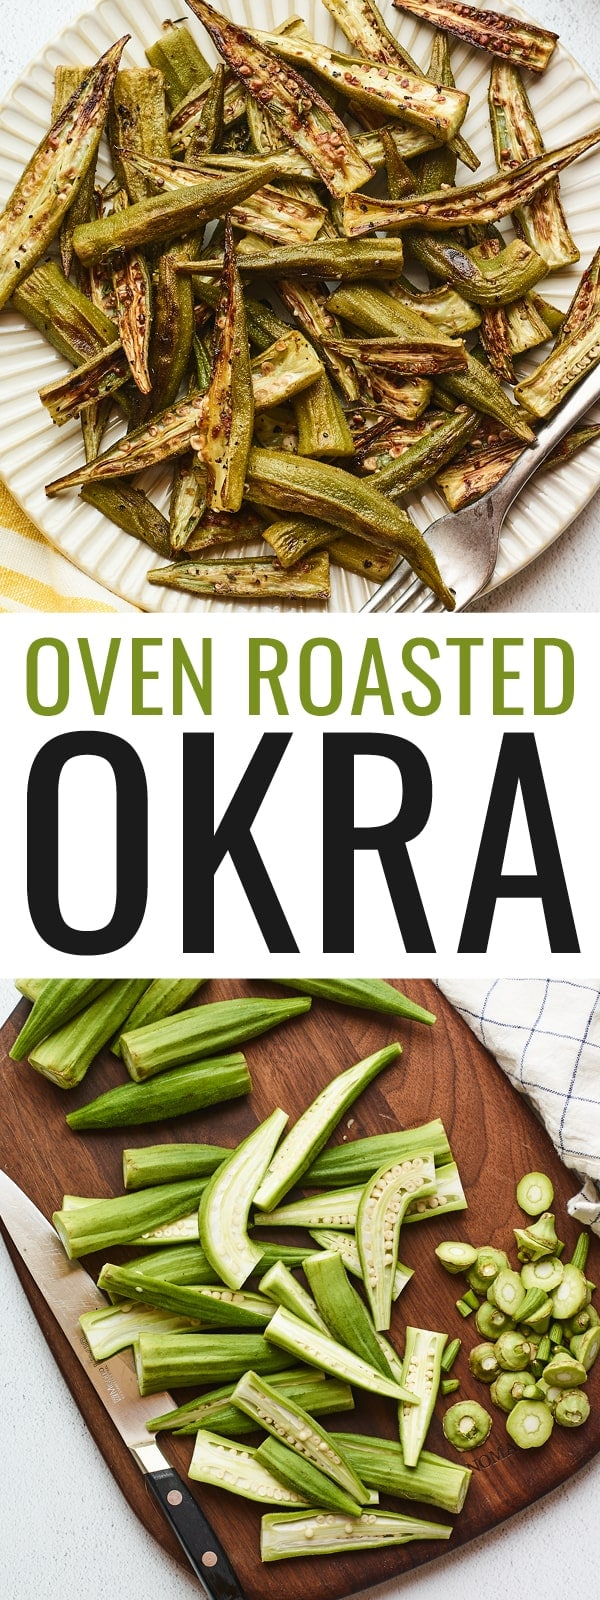 Roasted okra on a plate. Another photo of fresh okra being chopped on a wood cutting board.